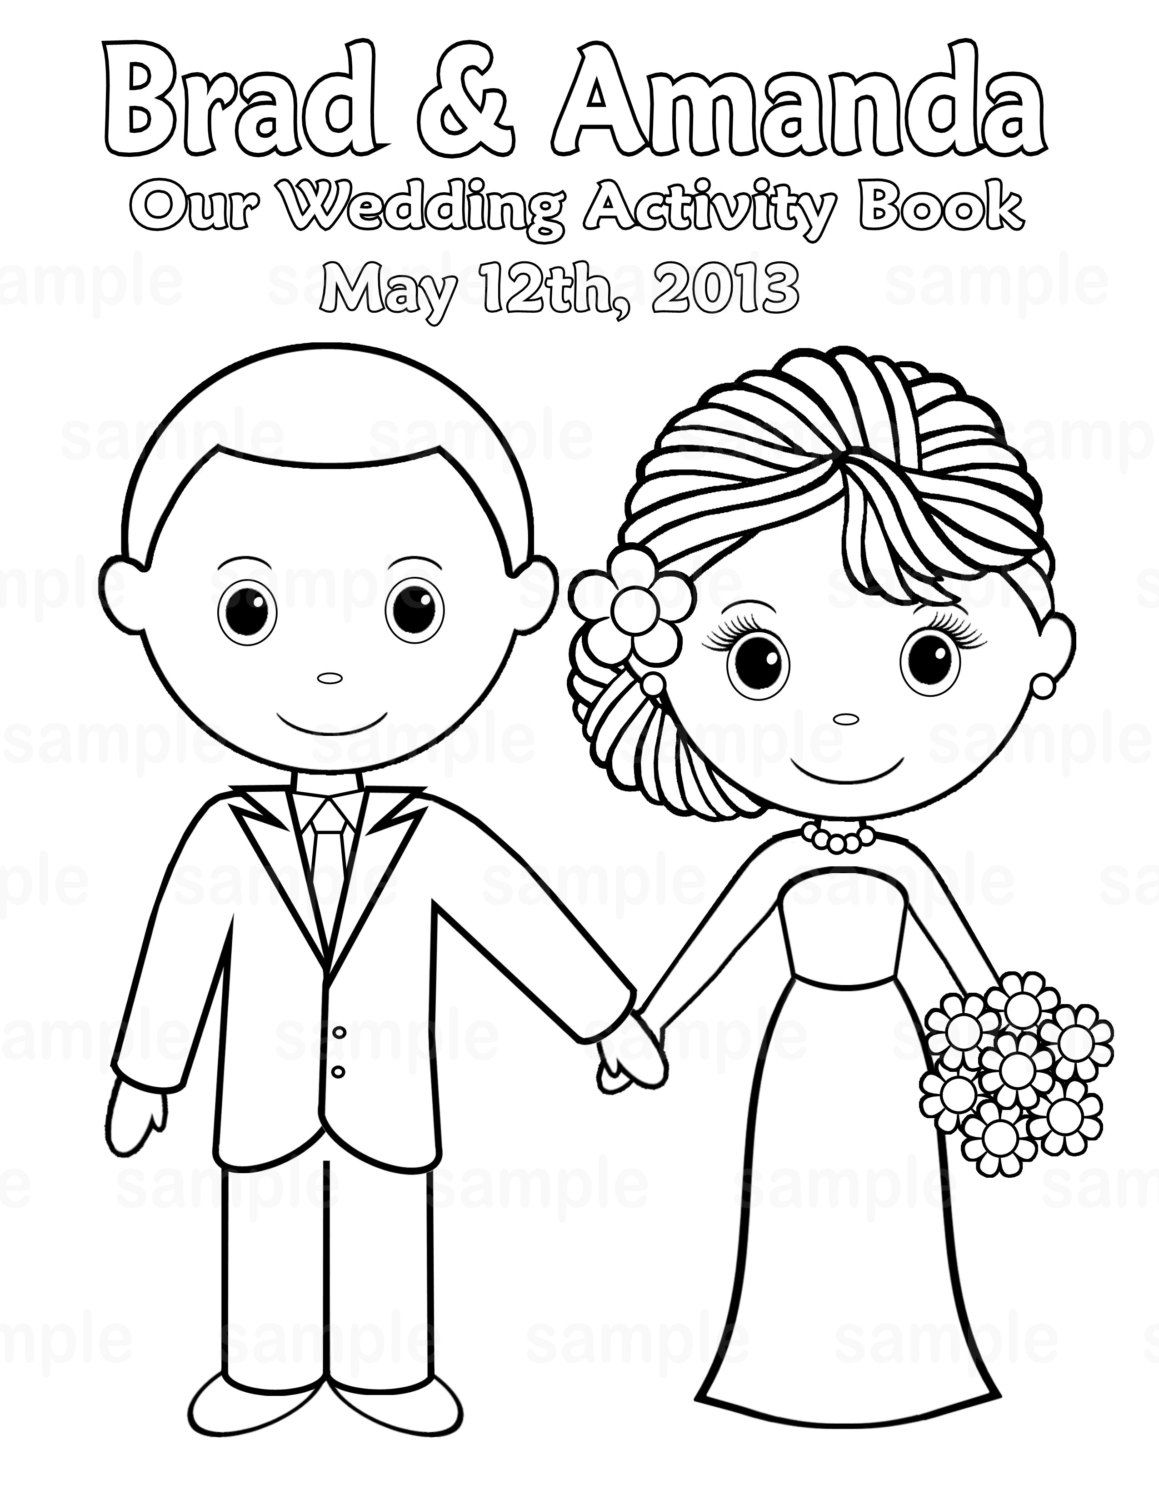 8 5 x 11 printable coloring pages - Free Printable Coloring Pictures Wedding Printable Personalized Wedding Coloring Activity Book Favor Kids 8 5 X